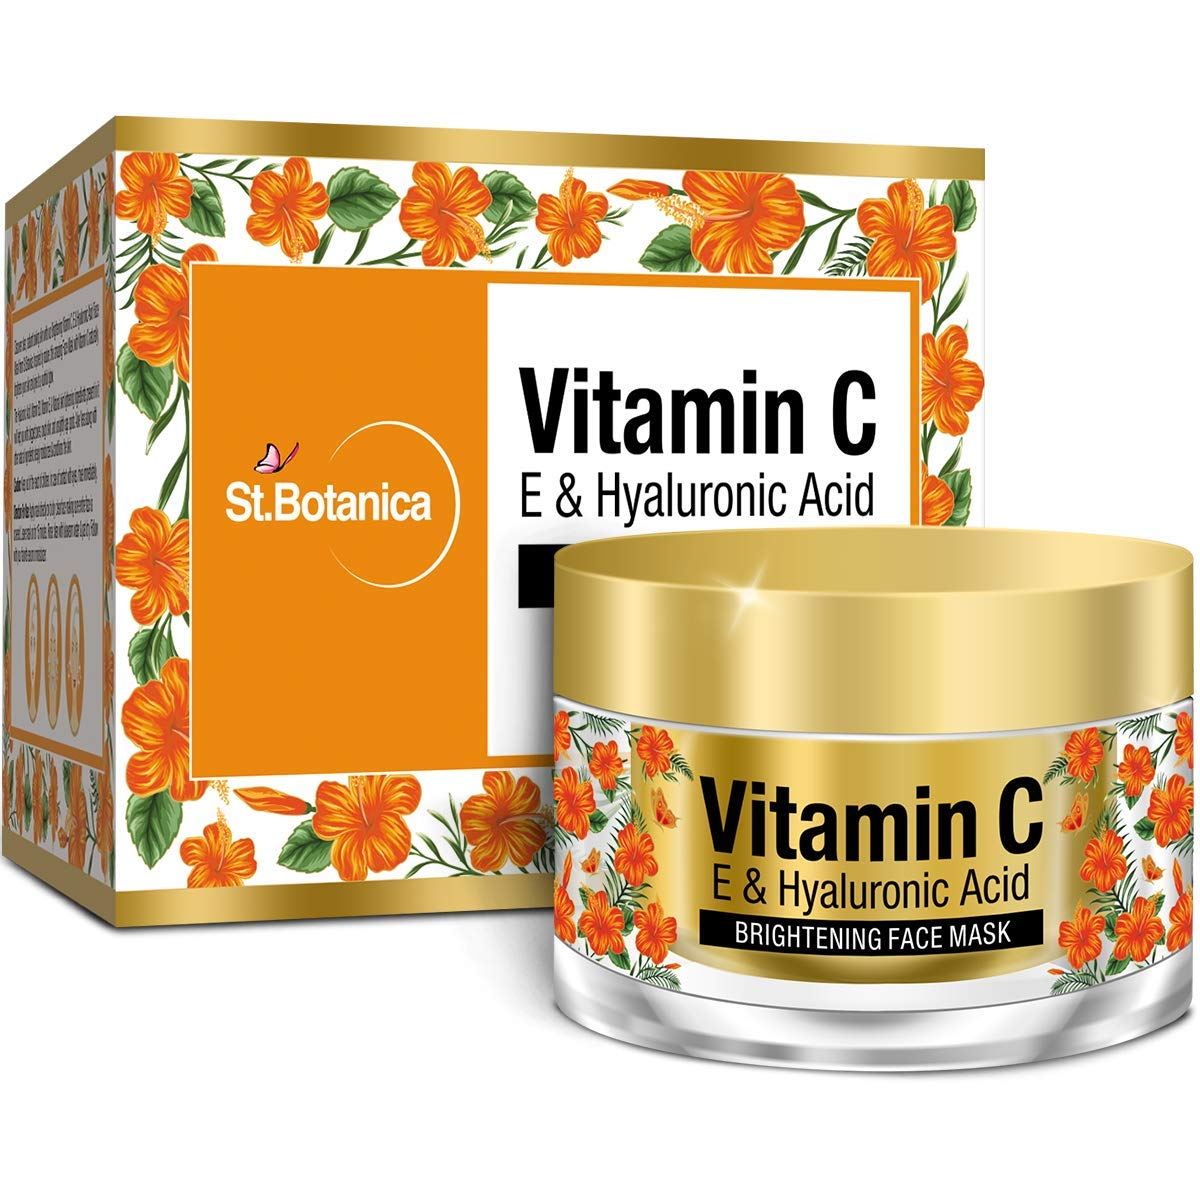 St Botanica Vitamin C, E & Hyaluronic Acid Brightening Face Mask - Instant Glow Face Pack